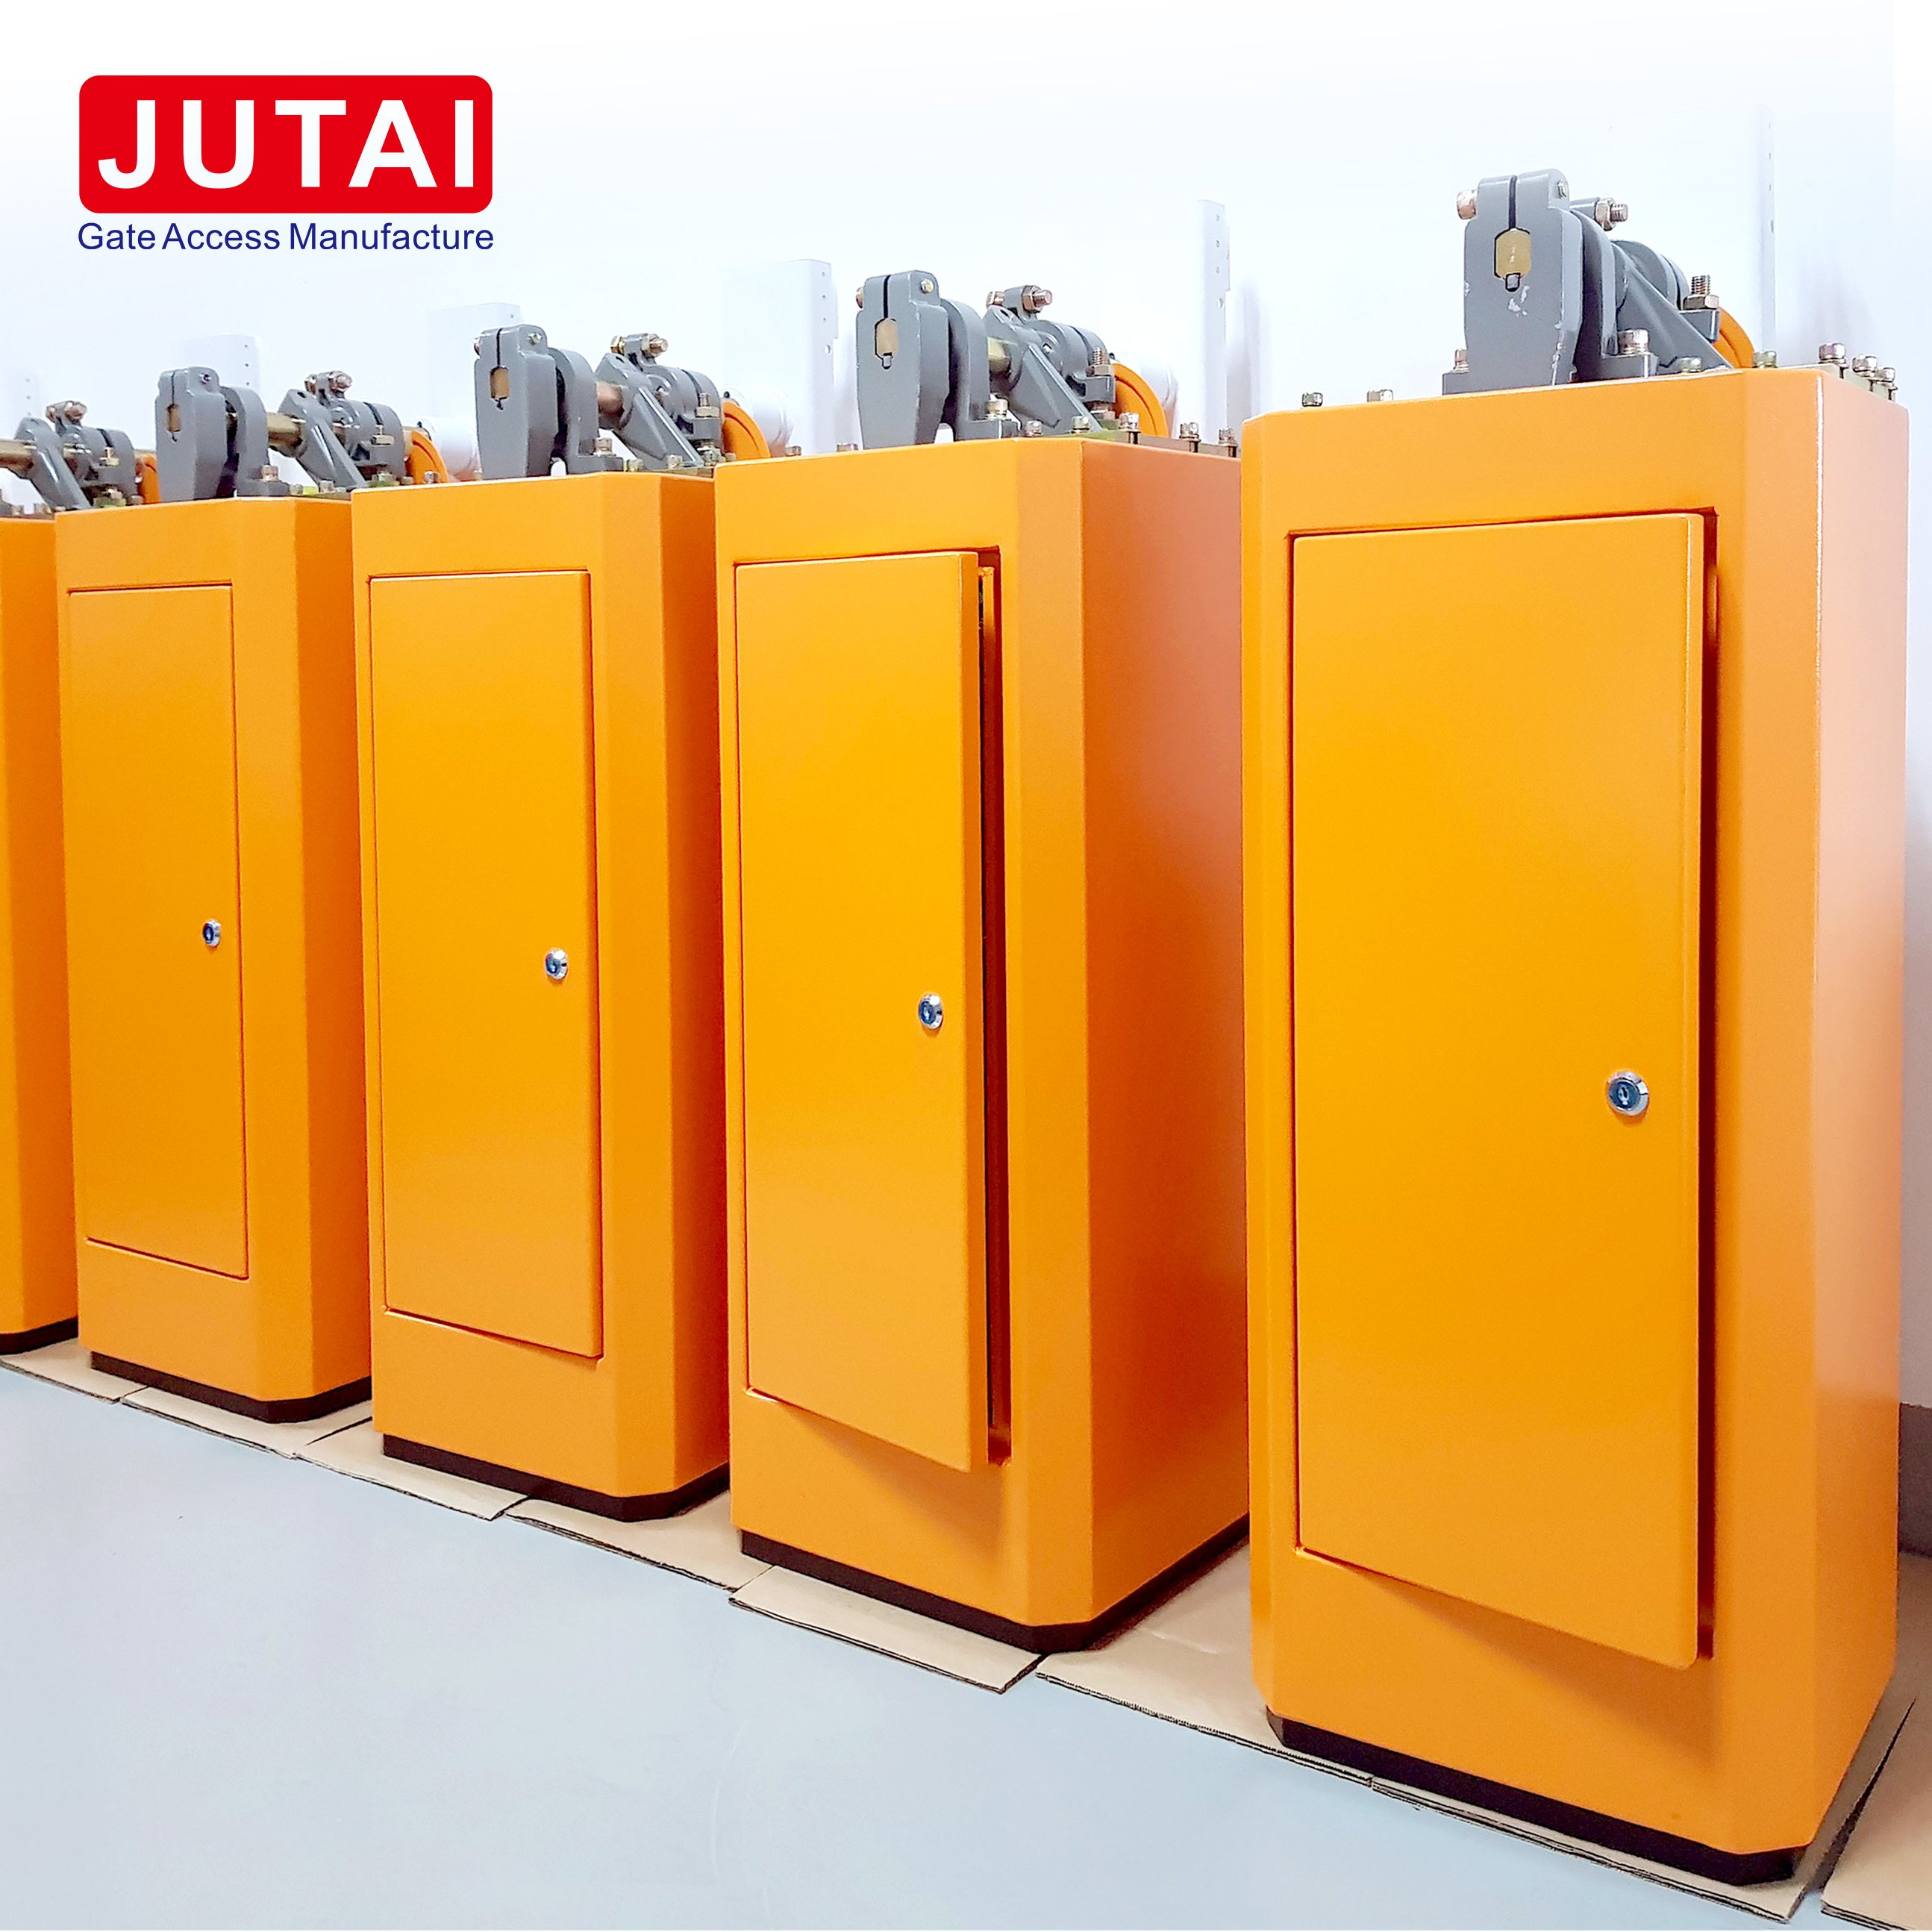 JUTAI Automatic Barrier Gate Operator Working With JUTAI Three Push Buttons to  Open/Stop/ Close